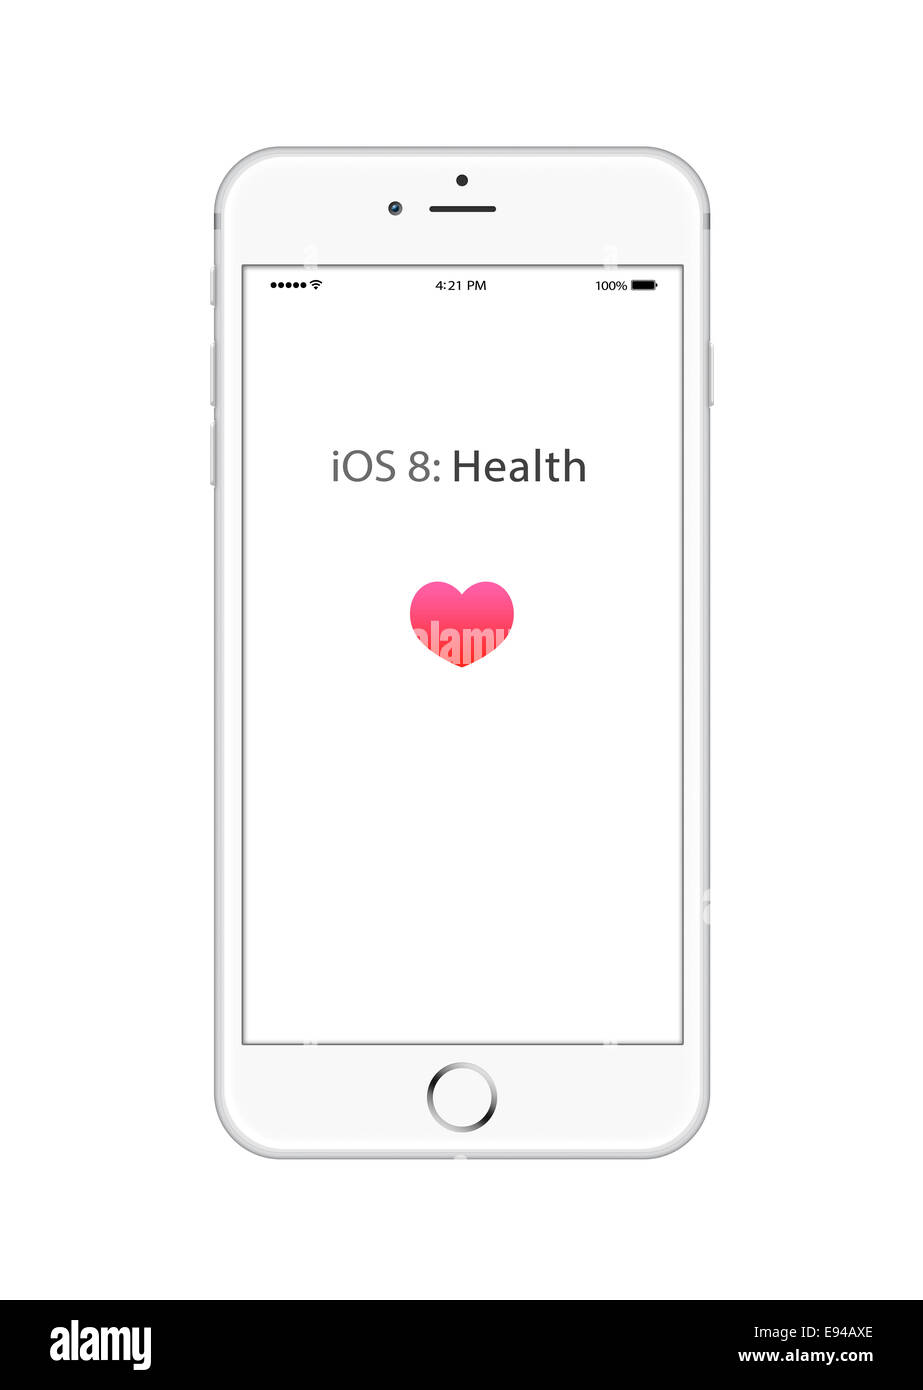 Iphone 6 silver with ios 8 health app screen, digitally generated artwork. - Stock Image